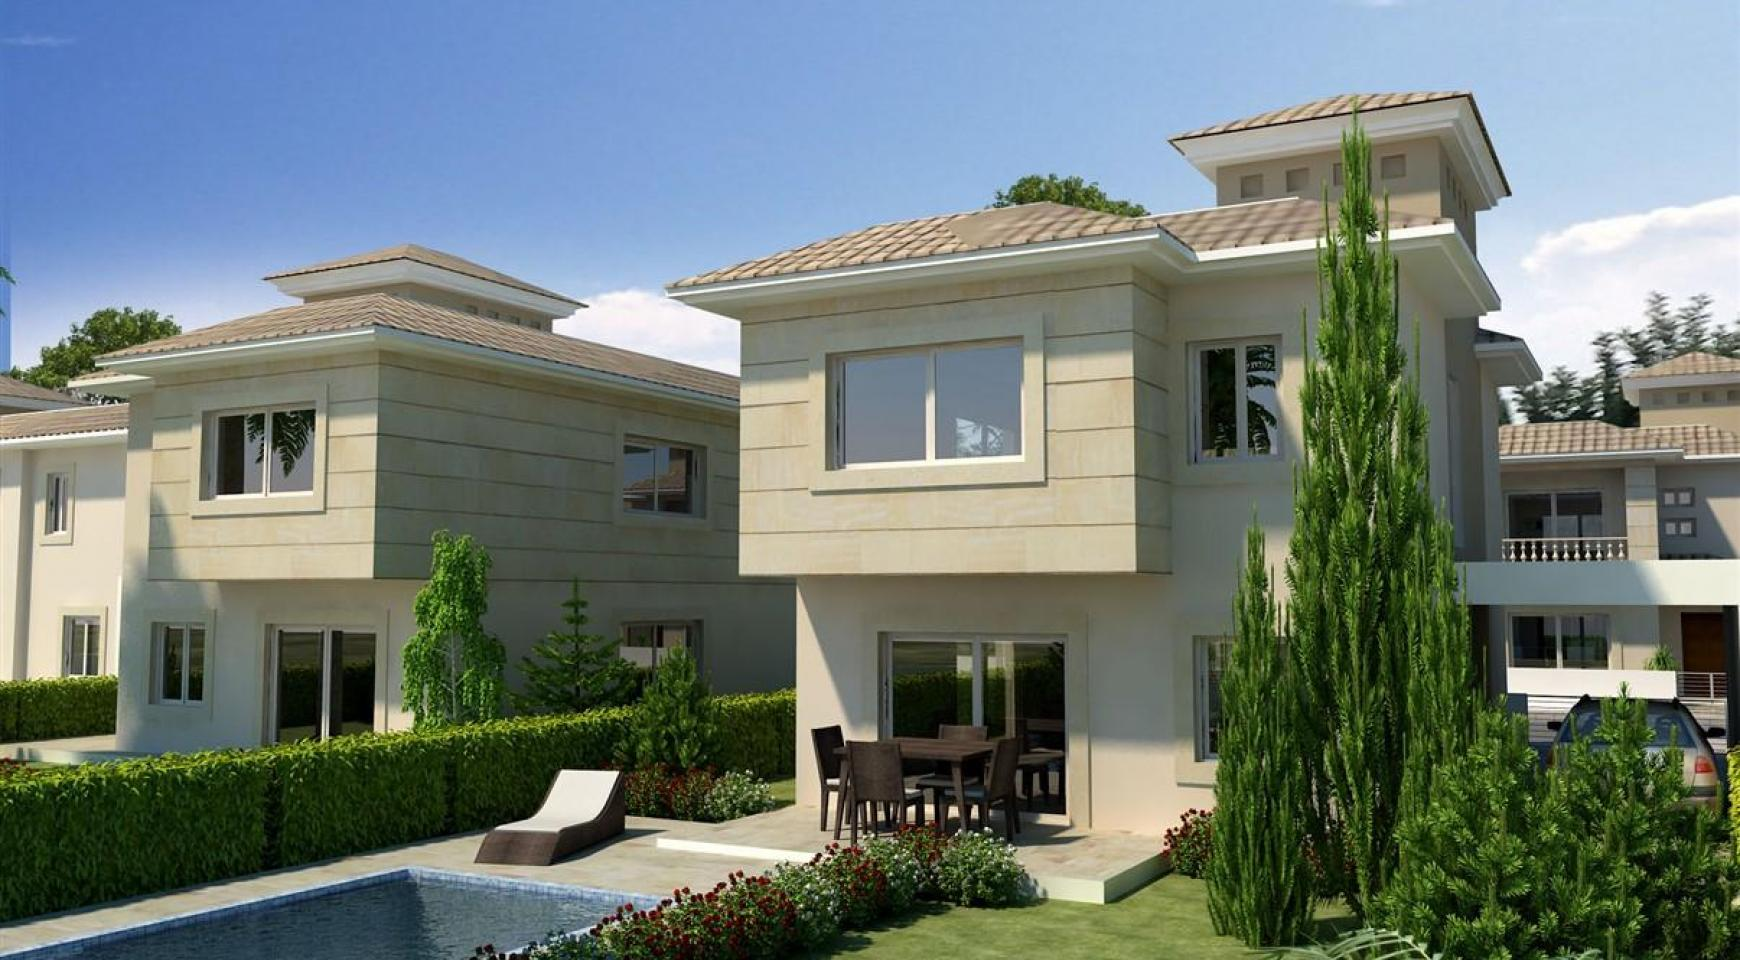 3 Bedroom Villa in a New Project - 13